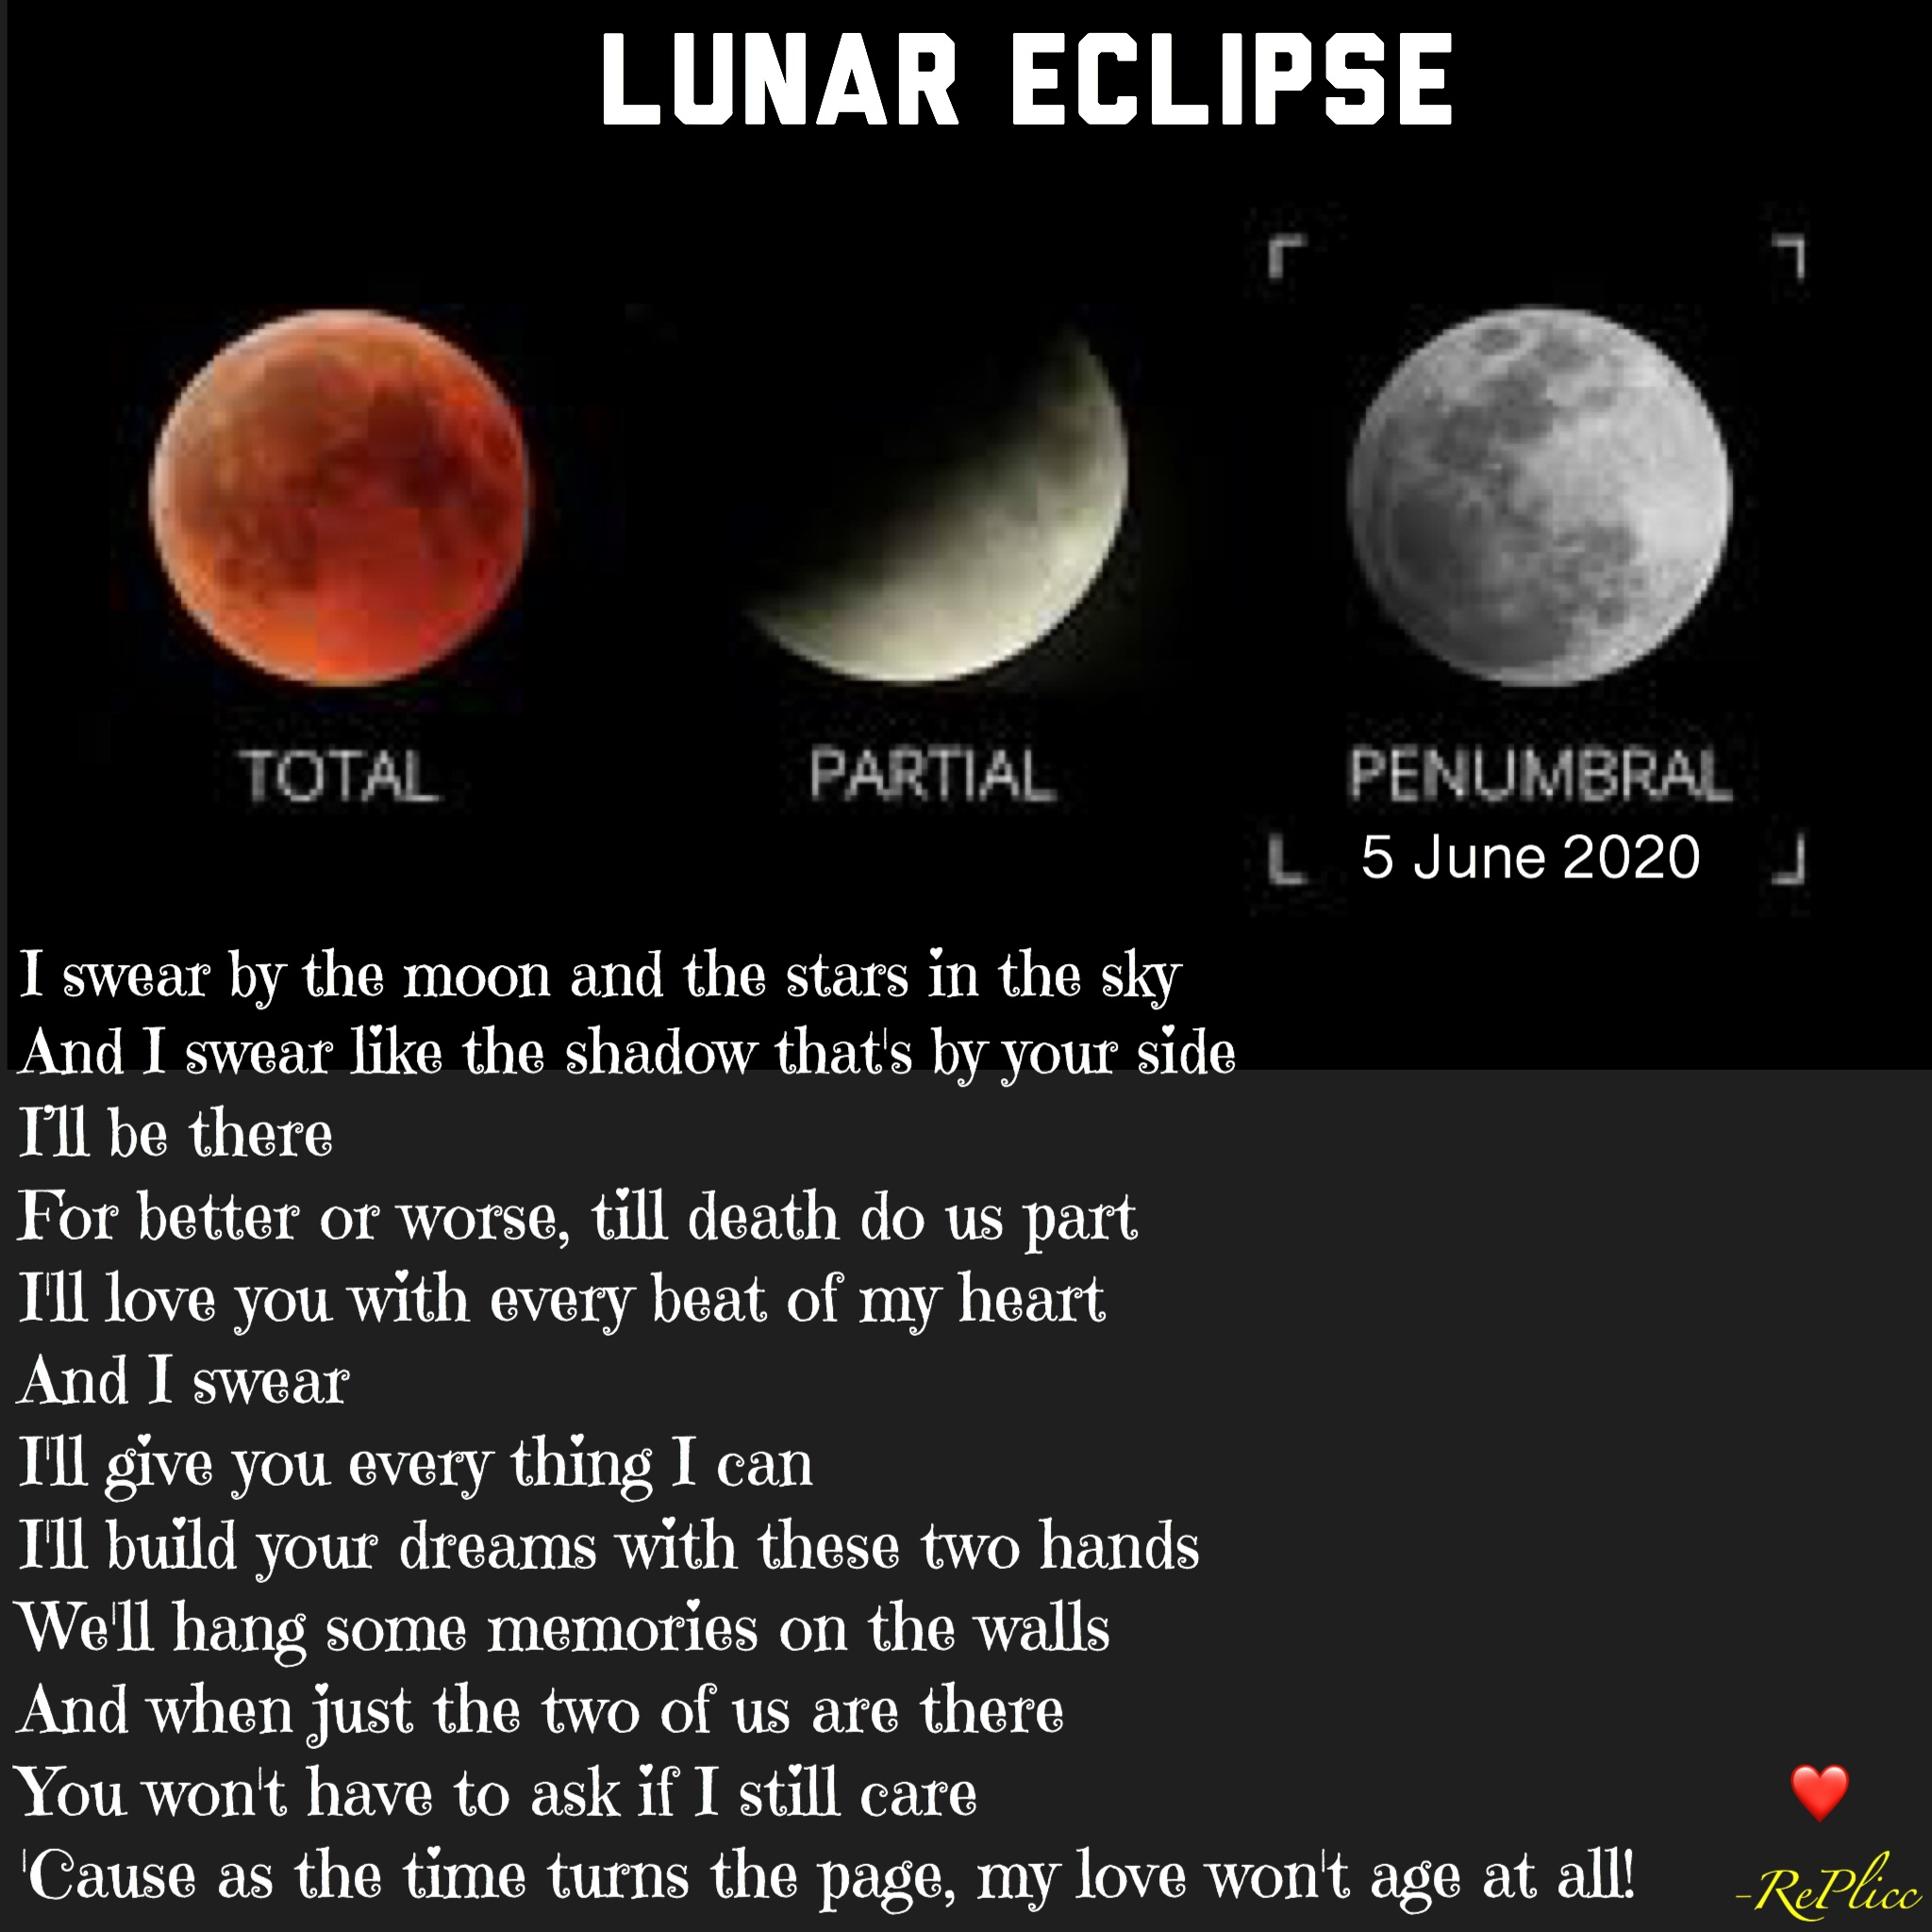 Lunar Eclipse 5 June 2020